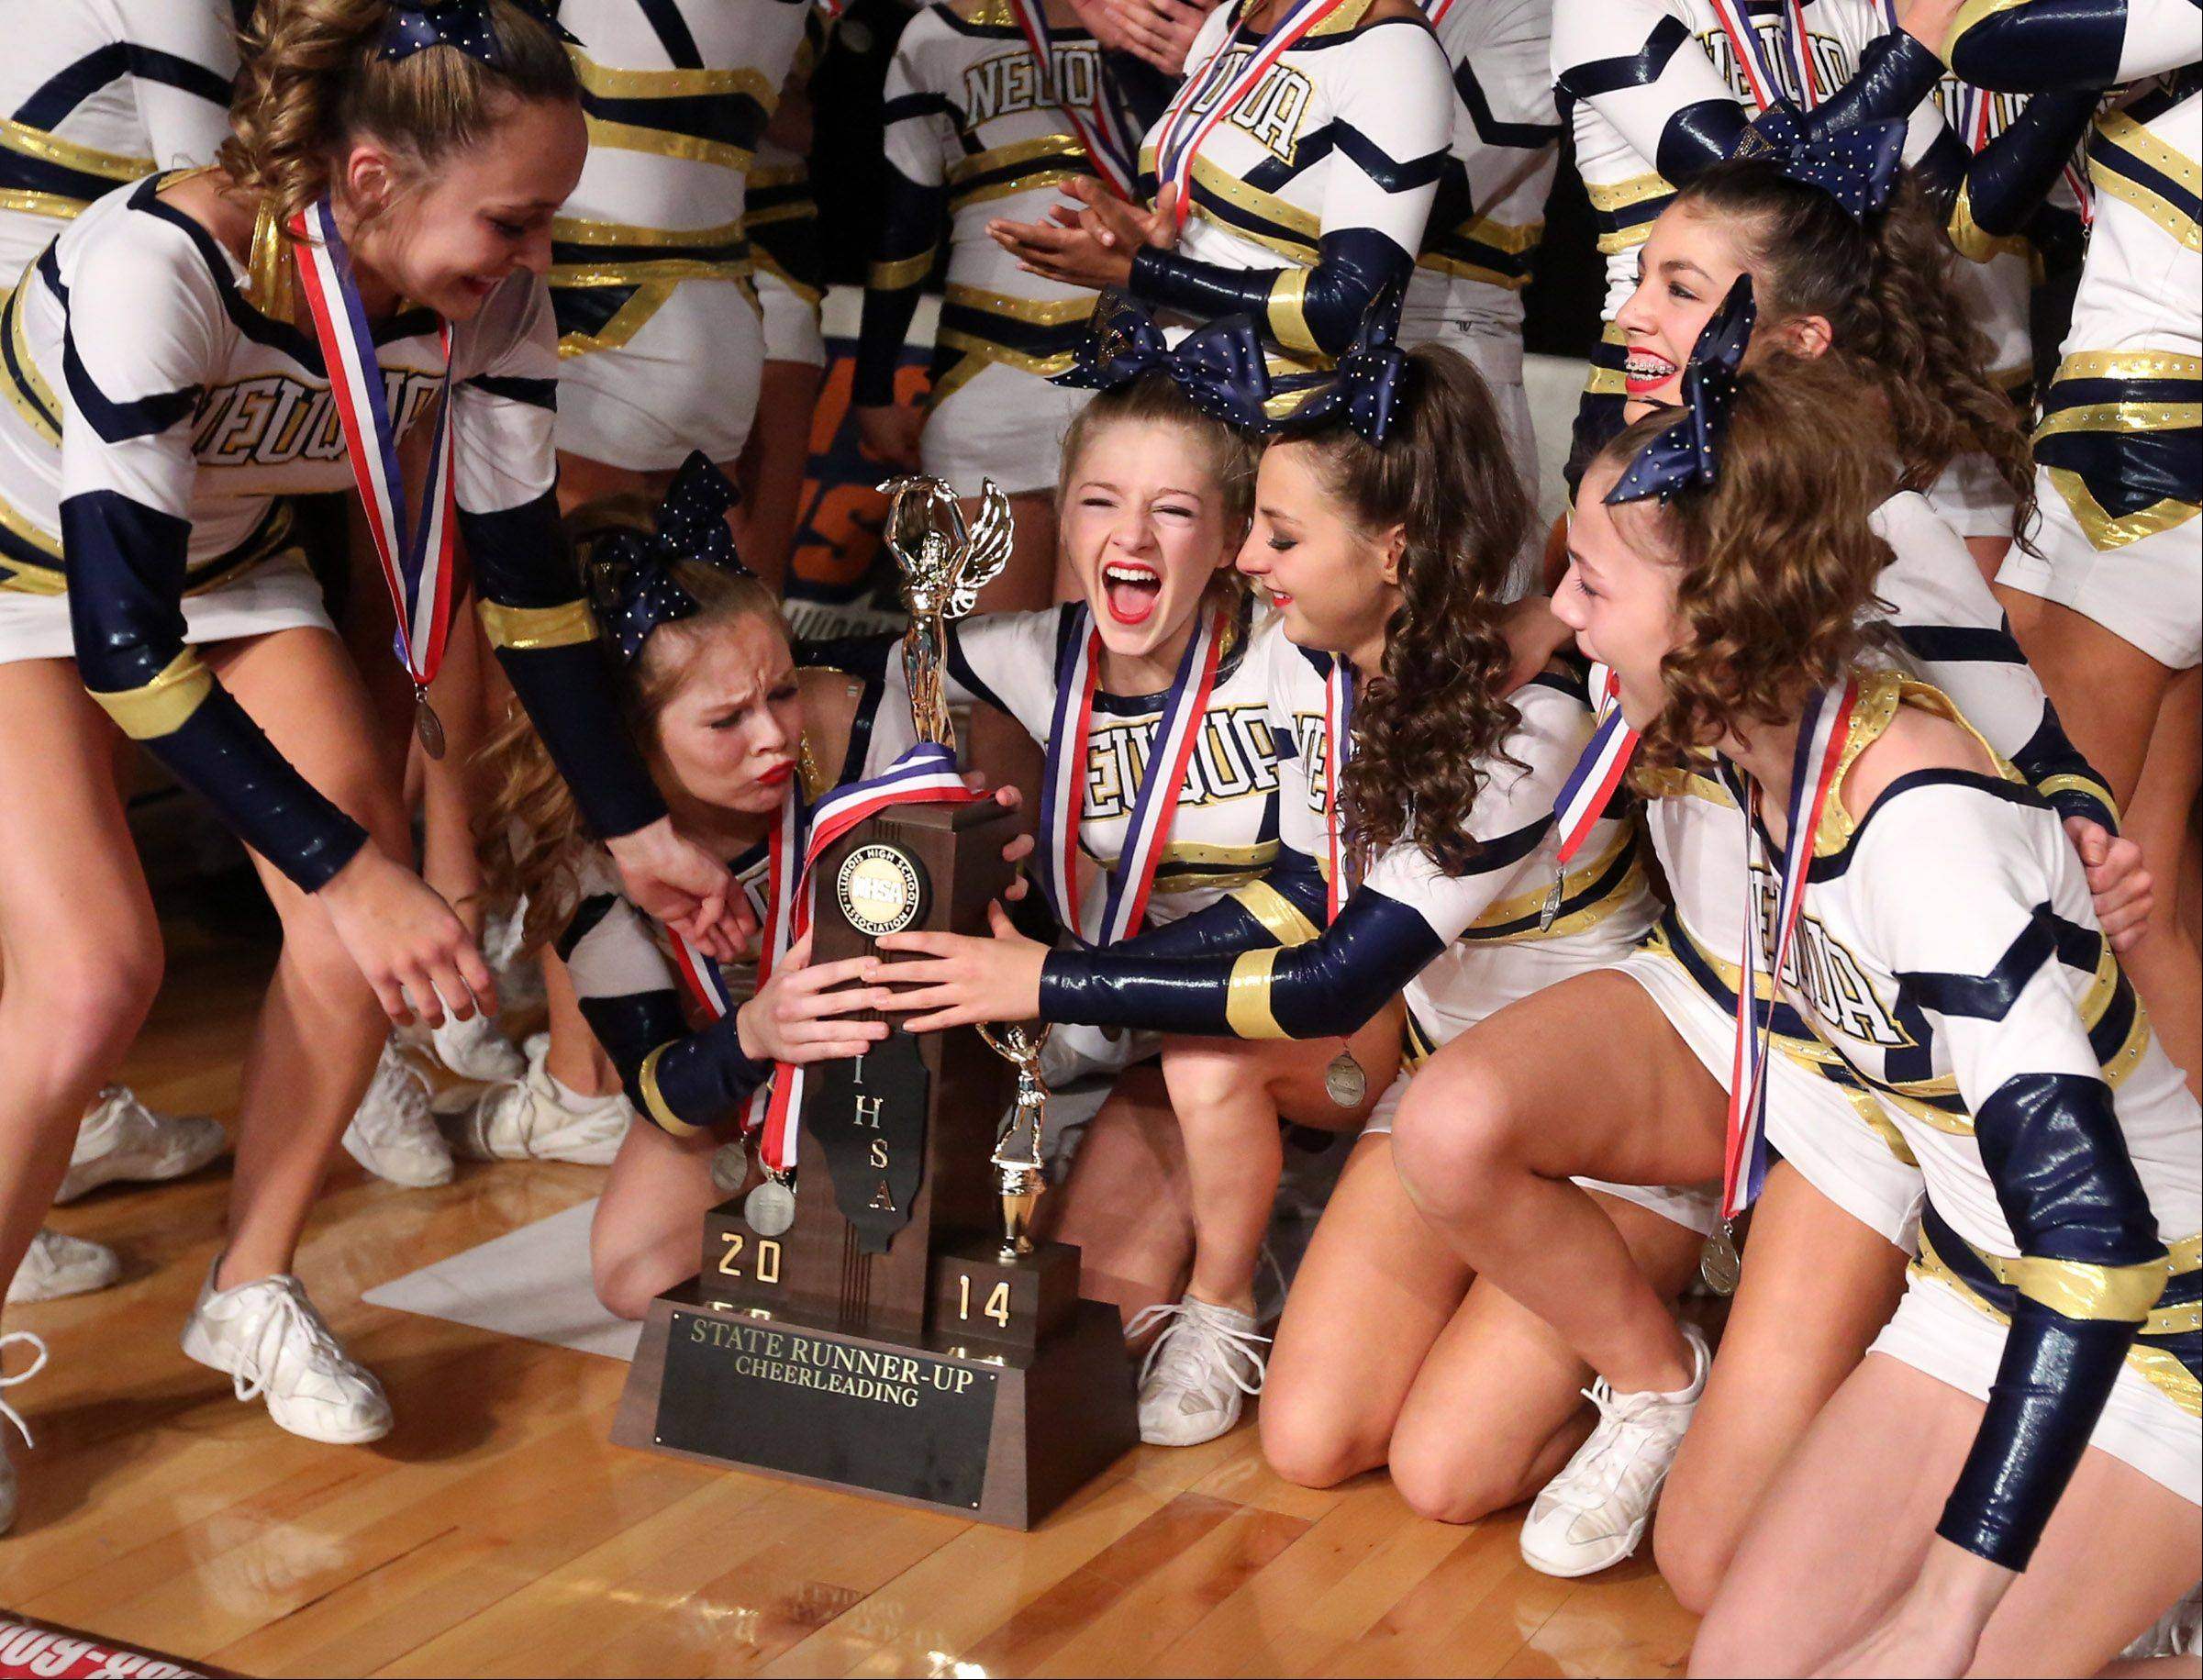 Neuqua Valley celebrates taking third place in the large team category at the IHSA state finals on Saturday in Bloomington.